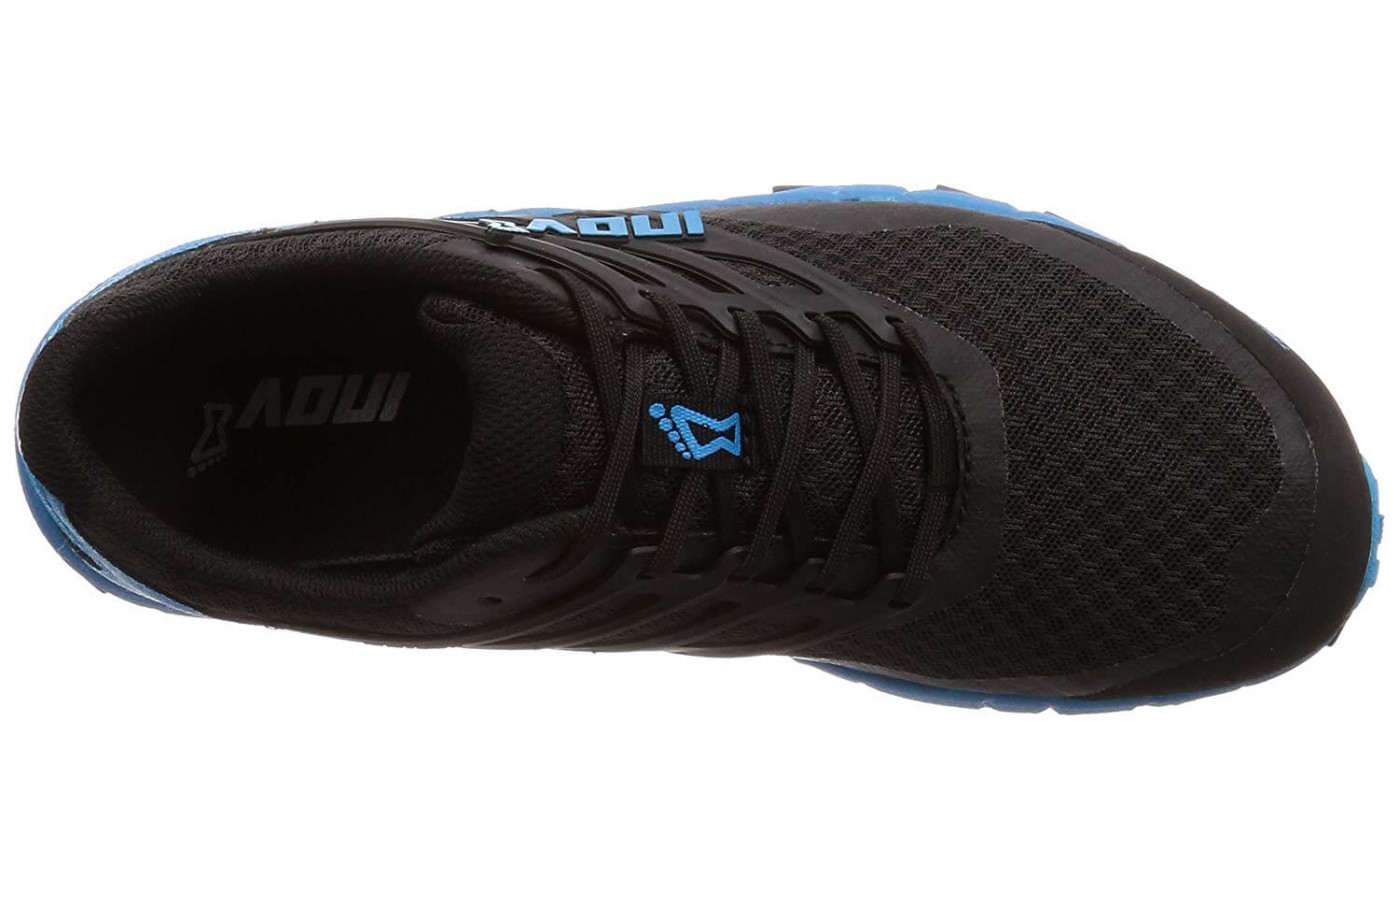 Inov-8 Trailtalon 290 top